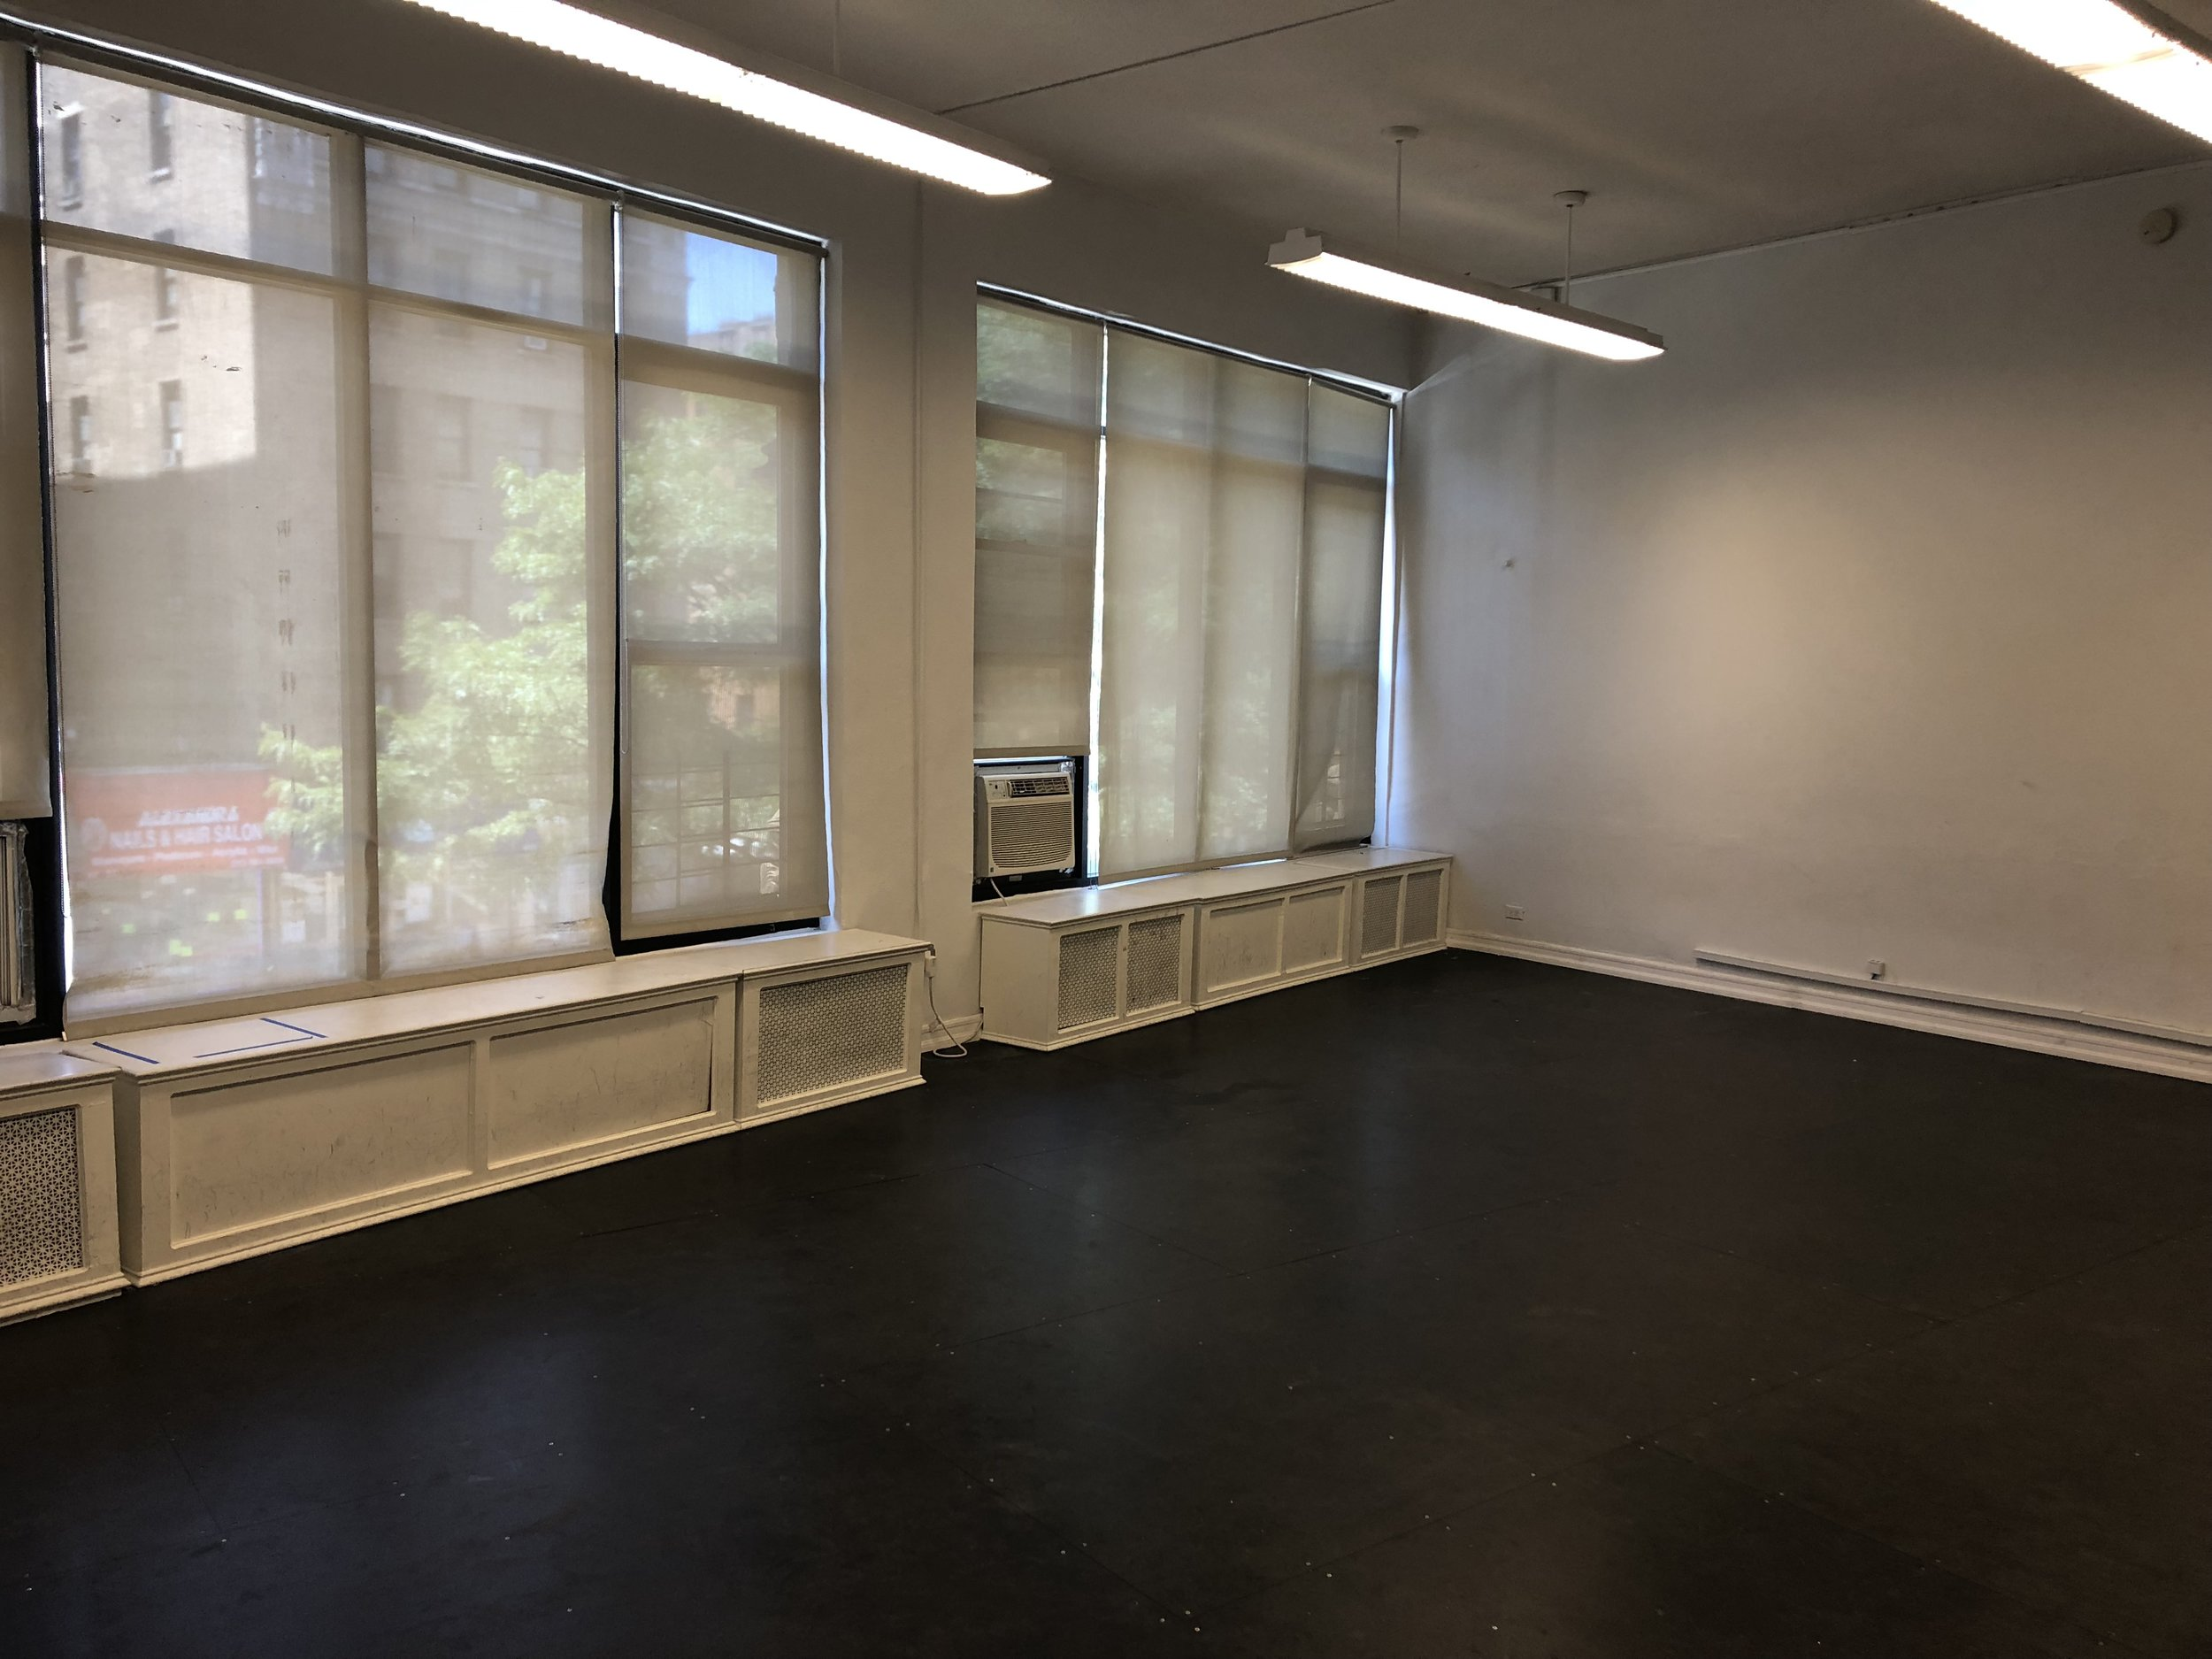 Classroom 1 - An intimate studio ideal for table reads, workshops, and meetings, as well as vocal, drama, tap, & other dance forms.MEDIUM: Approx. 23'x22'Black Masonite Floor, High Ceilings, White Walls, No Mirrors, Window A/C Unit, Near Restrooms, Speakers Upon Request, Keyboard Upon Request, Free Wifi, Tap Shoes OKIndividual Artist: $10/hr*Artist Classes: $15/hr*Non-Profit: $15/hr*For-Profit: $25/hr*